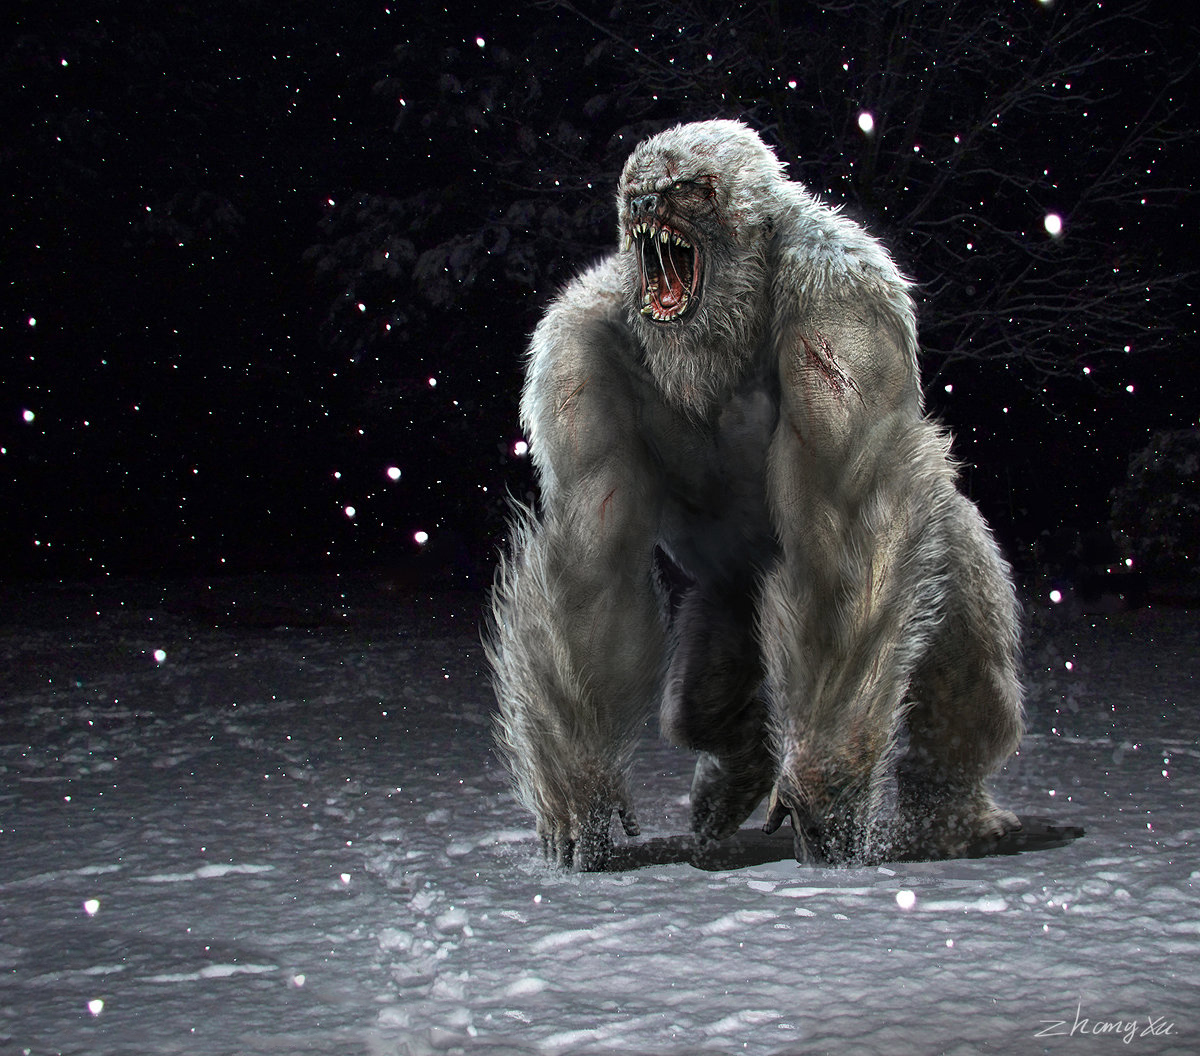 xu-zhang-far-cry-4-dlc-valley-of-the-yetis-concept-art-by-xuzhang-79.jpg